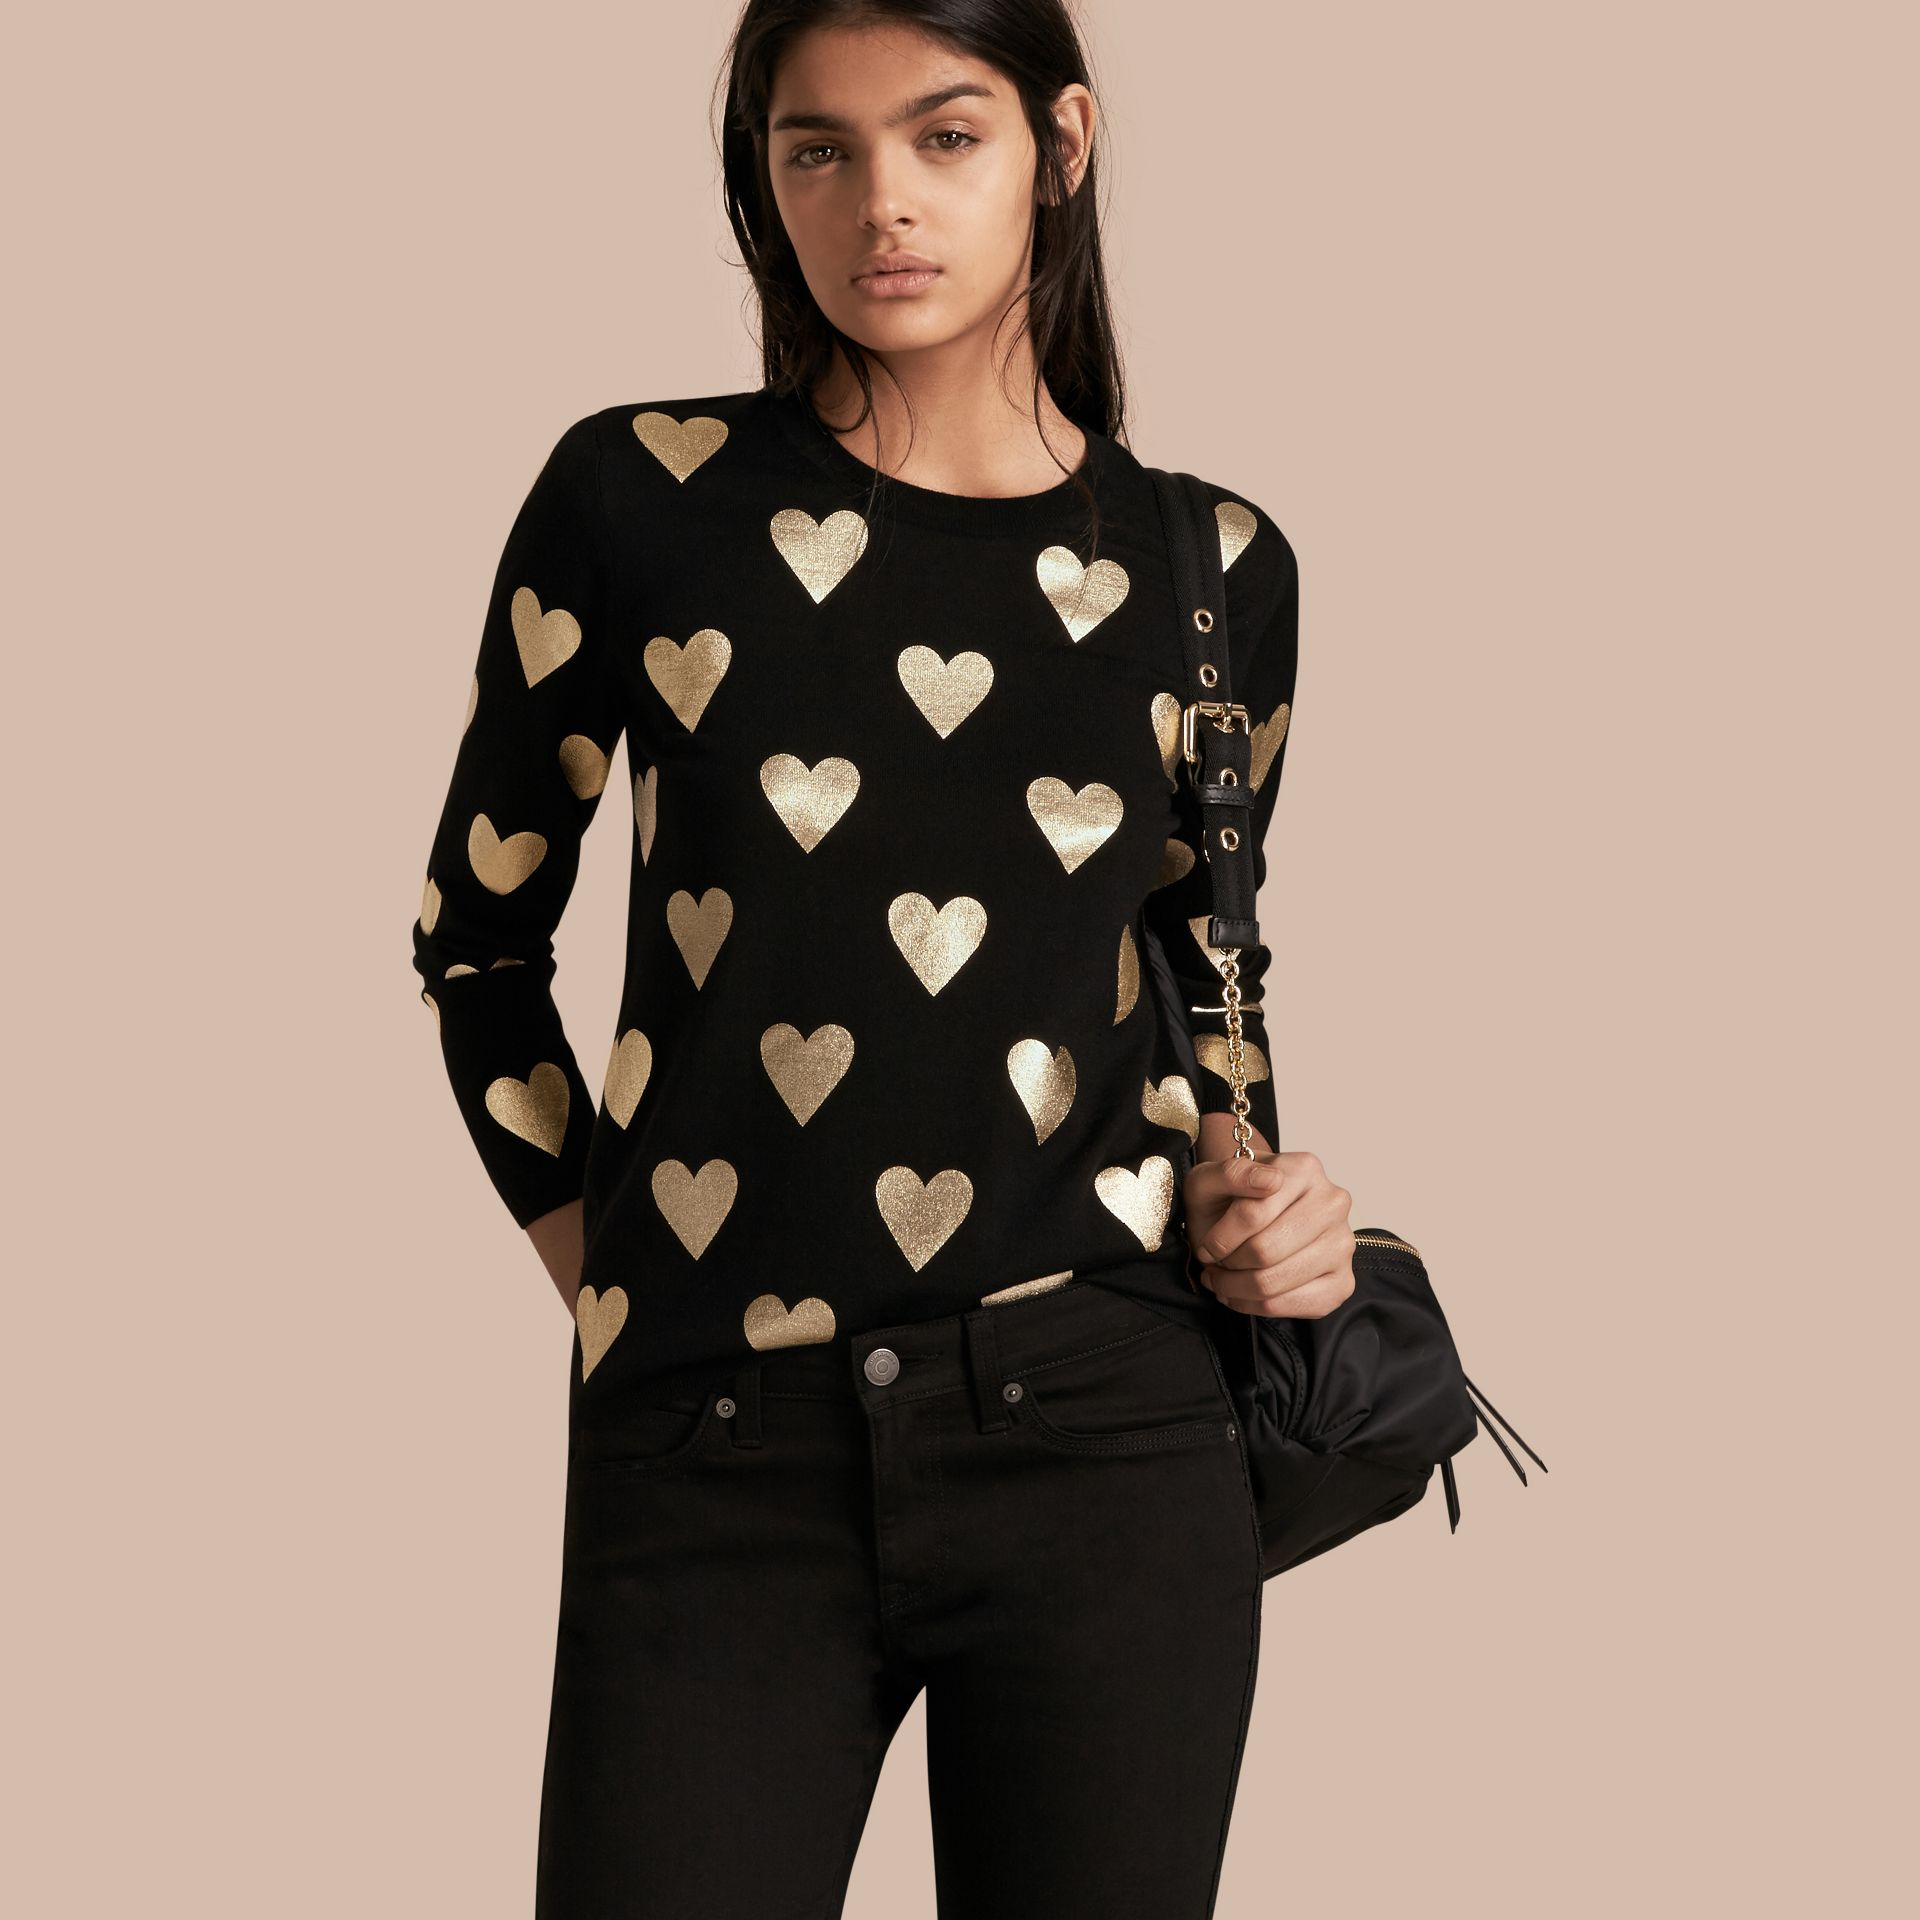 Black Crew Neck Heart Print Merino Wool Sweater Black - gallery image 1